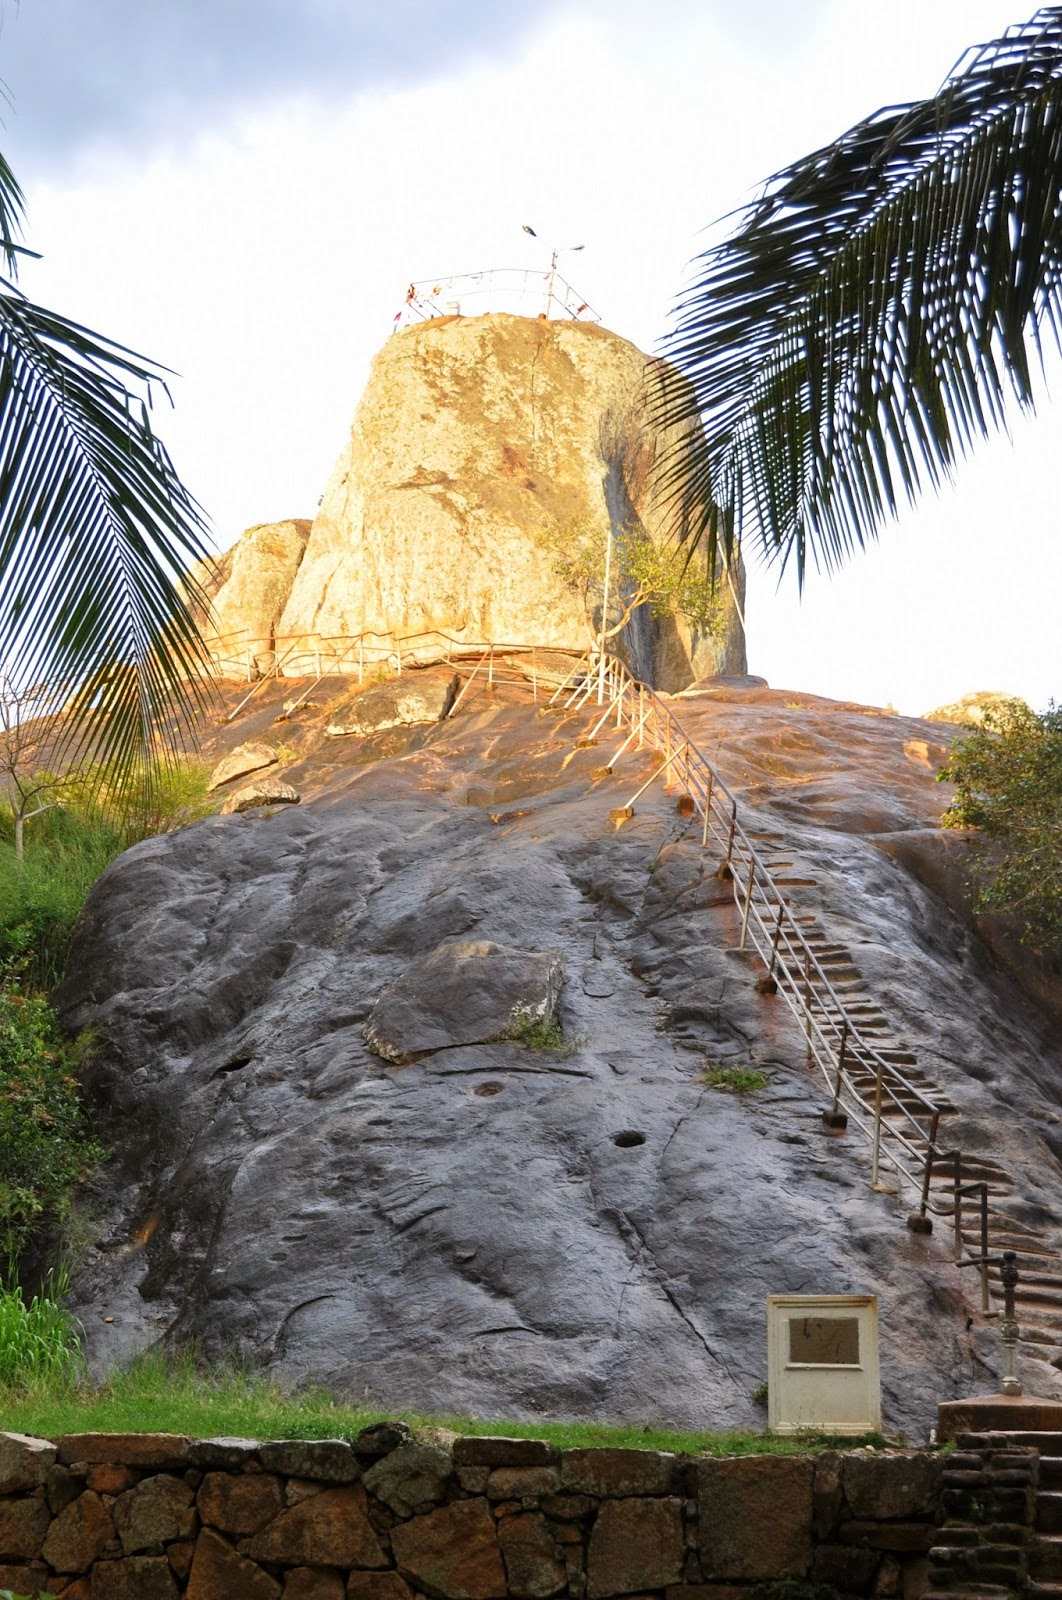 carved into granite rock steps lead to top Mihintale, ladders for pilgrims